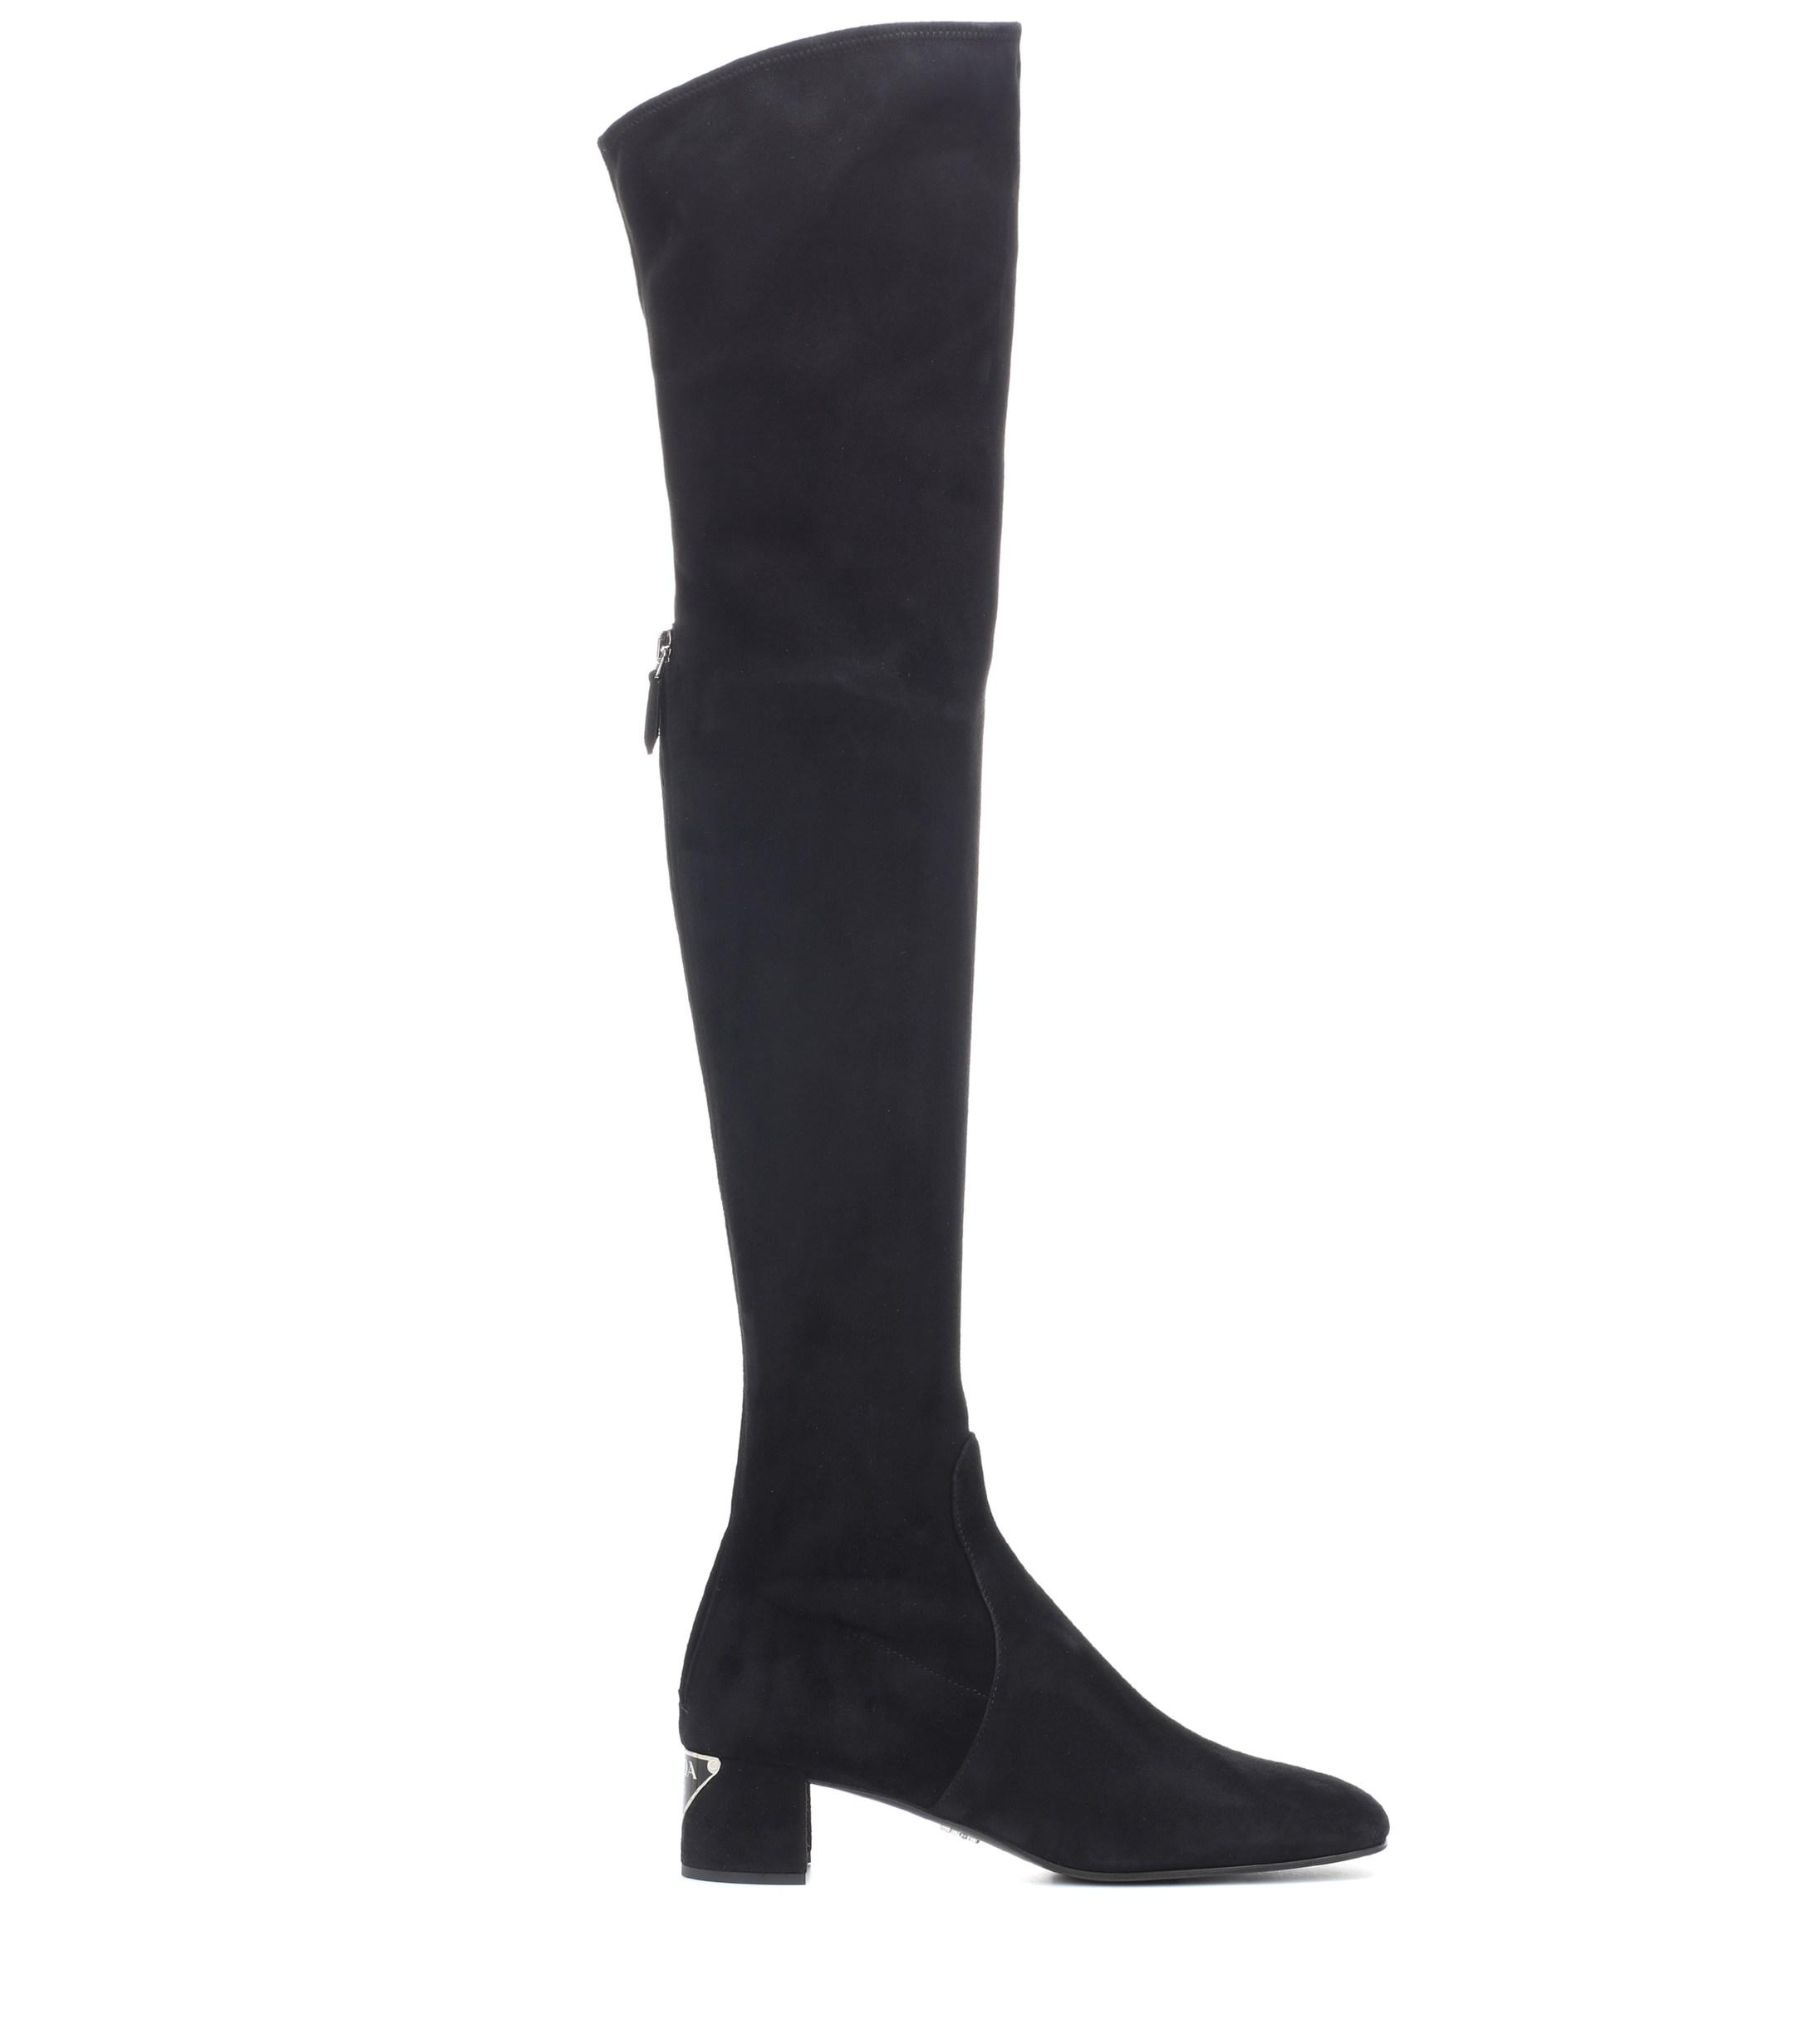 no sale tax new arrivals aliexpress Women's Black Suede Over-the-knee Boots